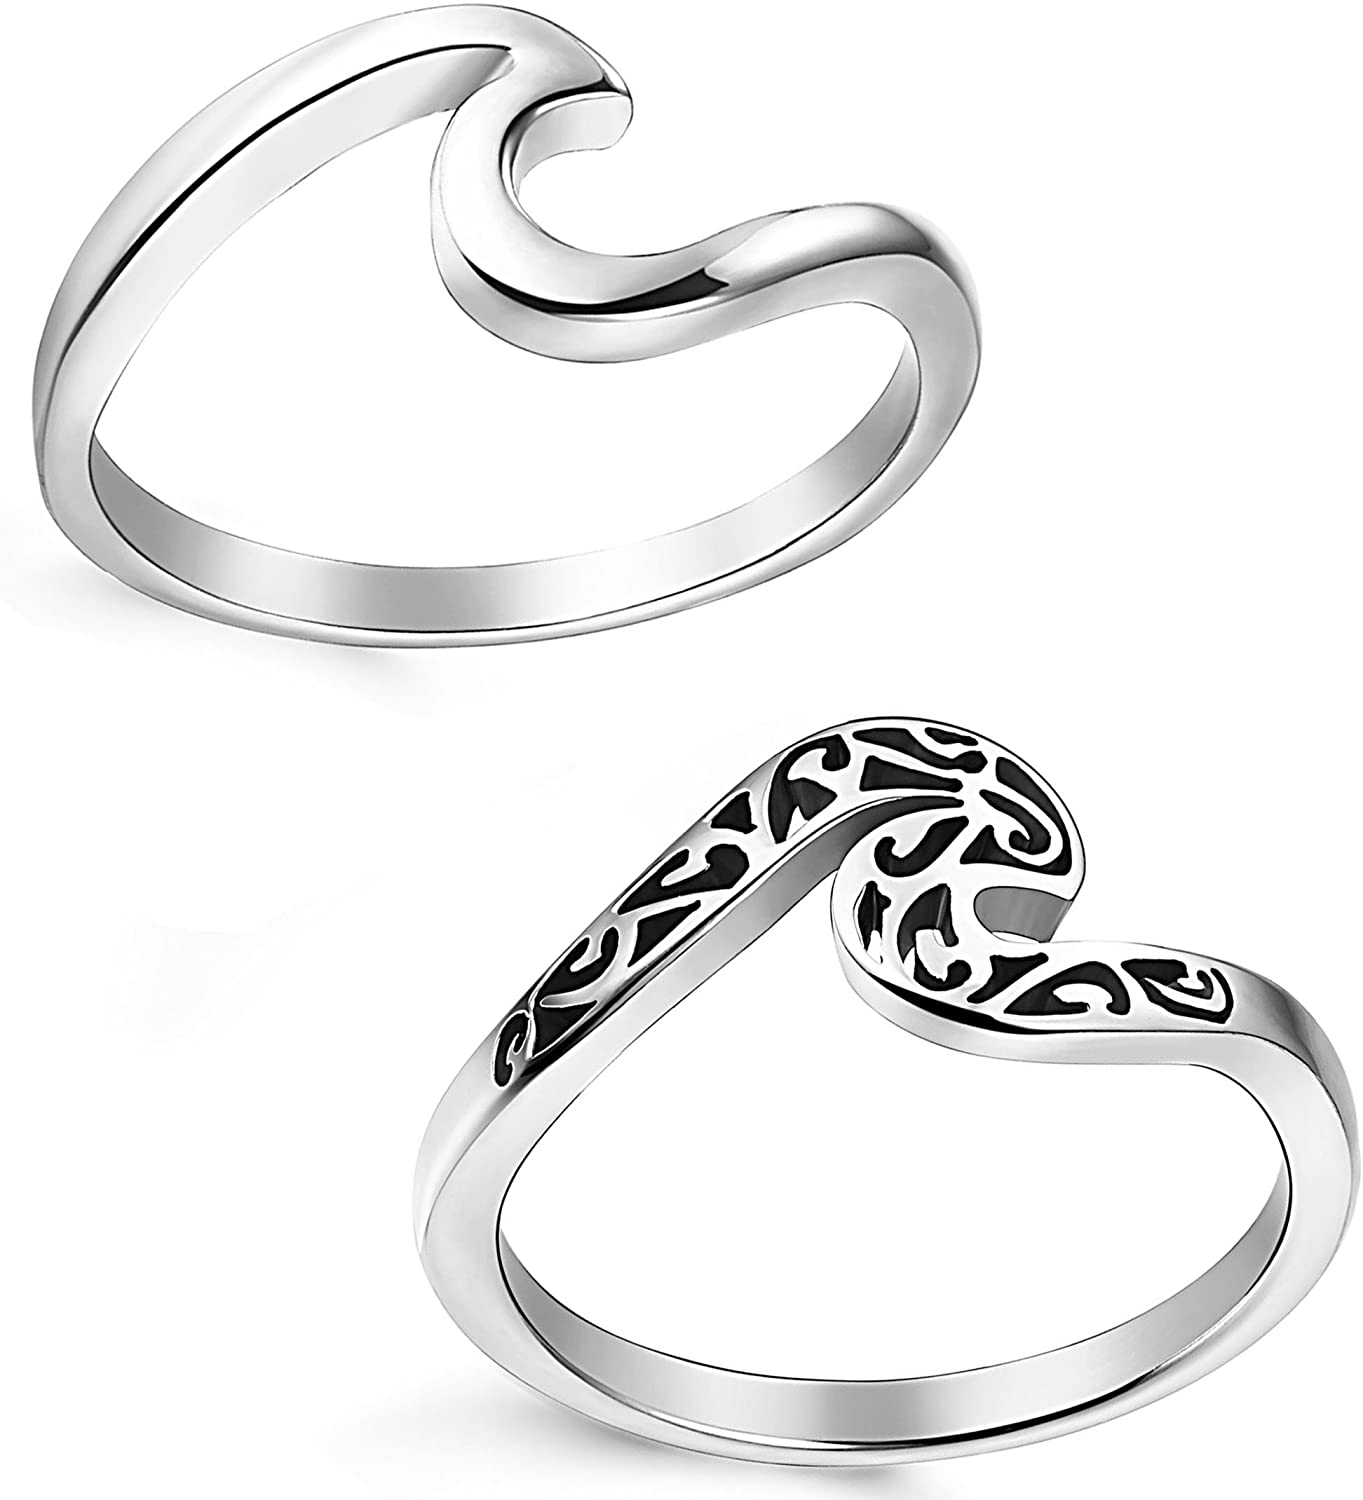 LOLIAS 2 Pcs Stainless Steel Beach Rings for Women Girls Ocean Wave Ring,Size 5-11